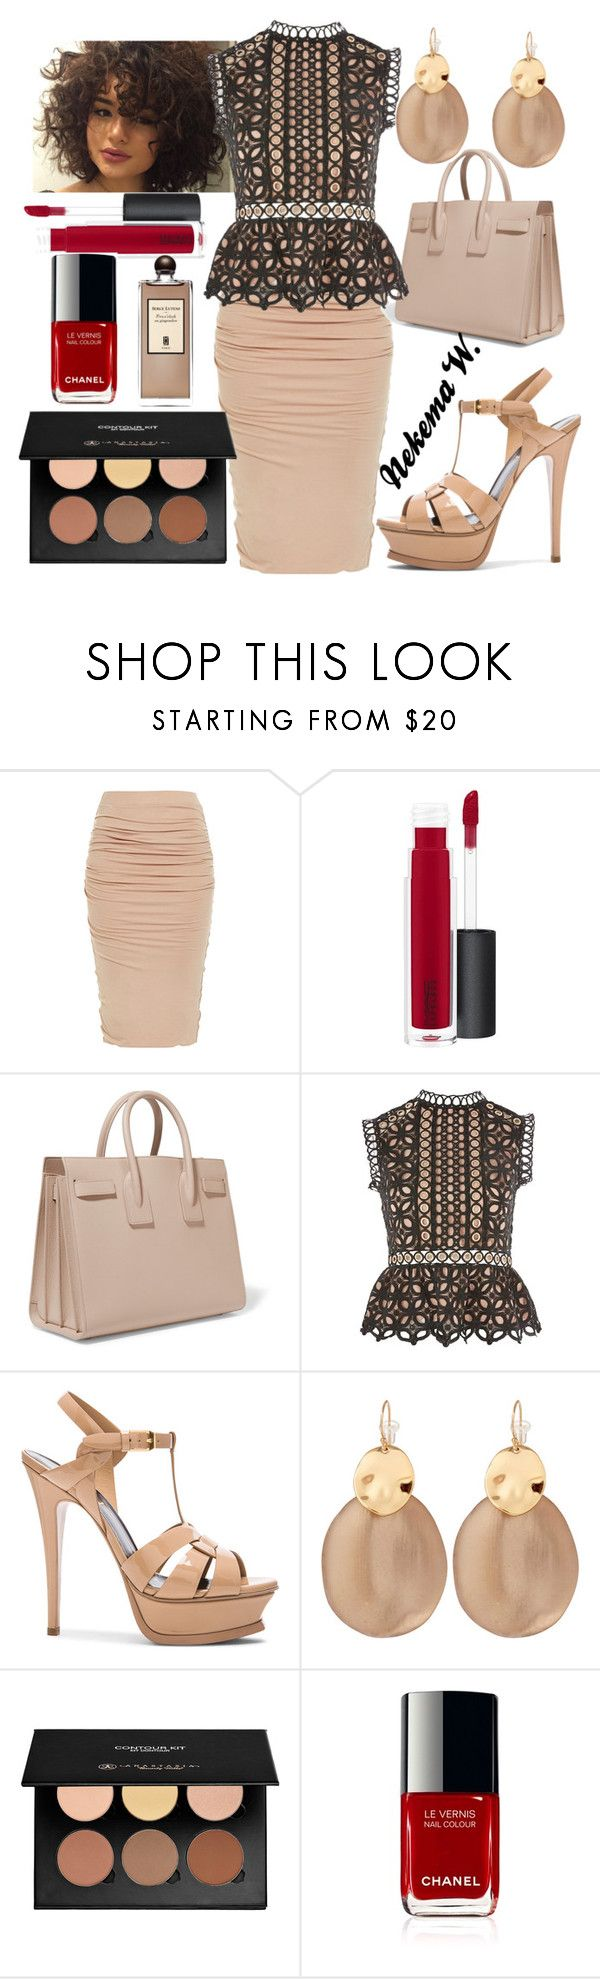 """""""Monday Work Wear📂💼"""" by sexyshonda ❤ liked on Polyvore featuring MAC Cosmetics, Yves Saint Laurent, Topshop, Alexis Bittar, Anastasia Beverly Hills and Serge Lutens"""